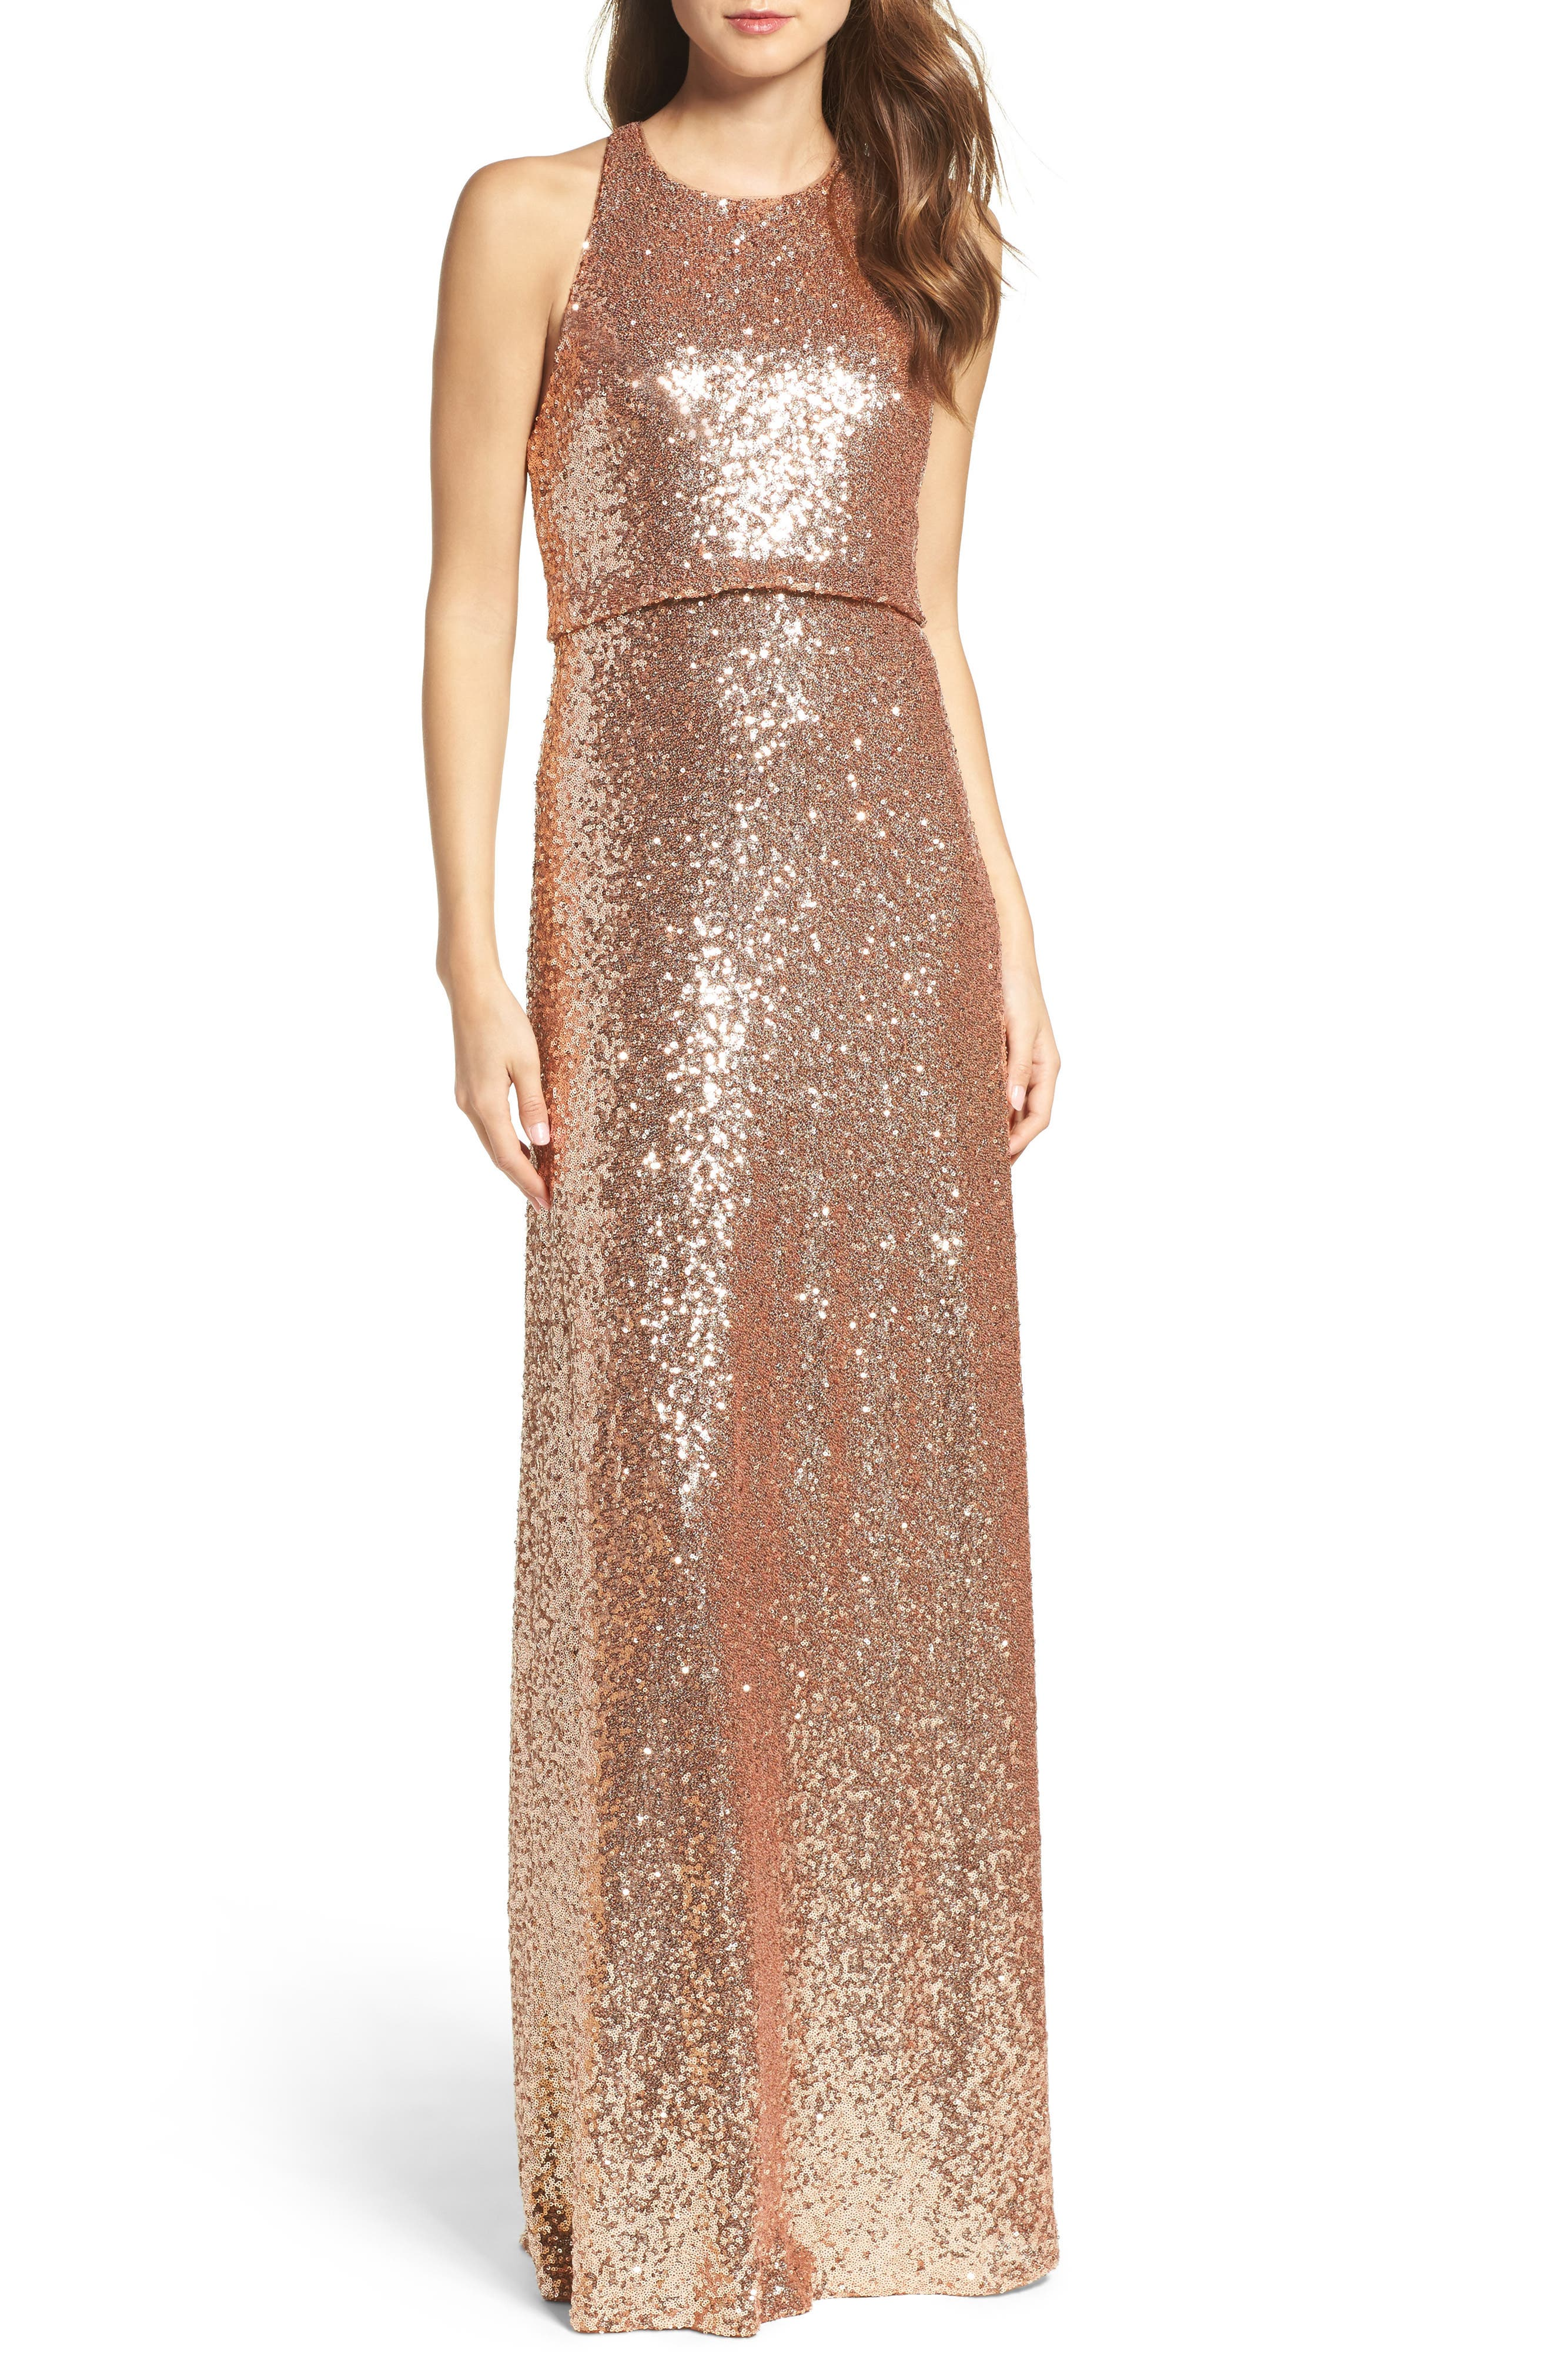 Alternate Image 1 Selected - Jenny Yoo Sloane Sequin Halter Gown